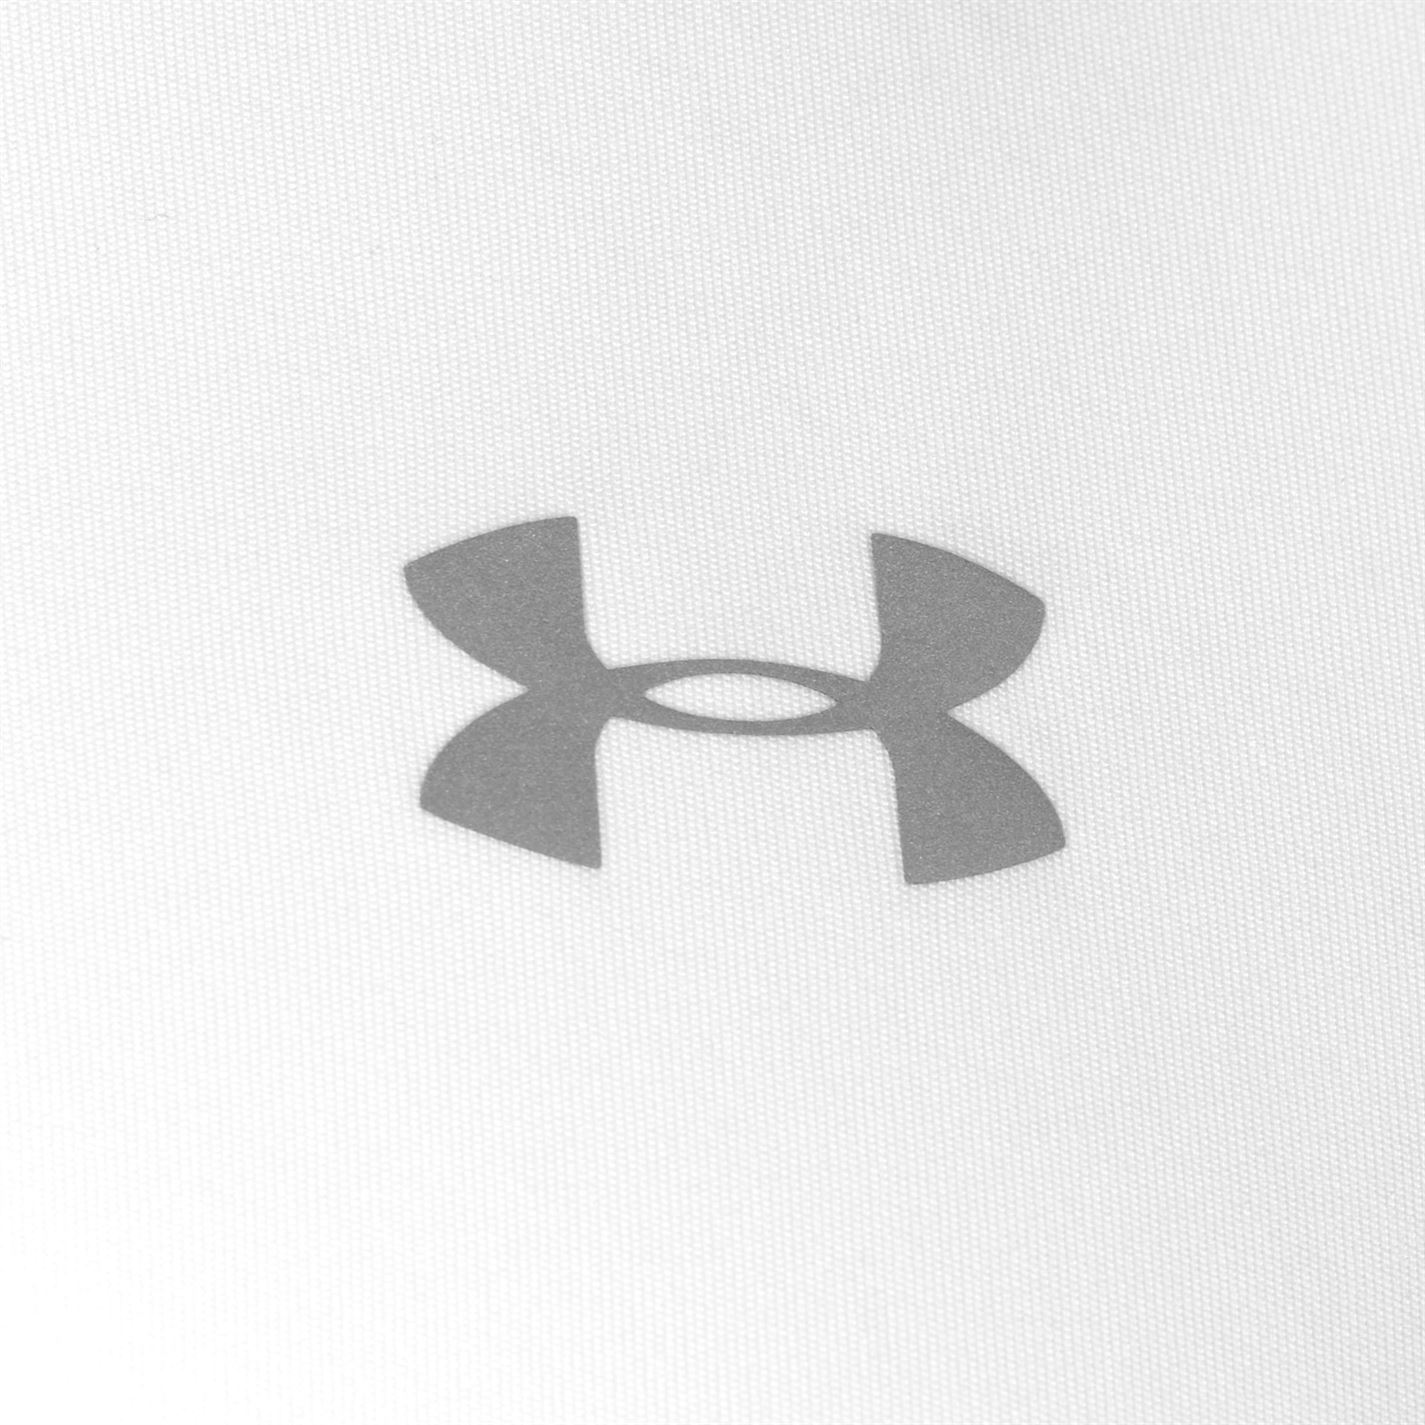 Under Armour Speed Stride Short Sleeve T Shirt Mens Gents Performance Tee Top